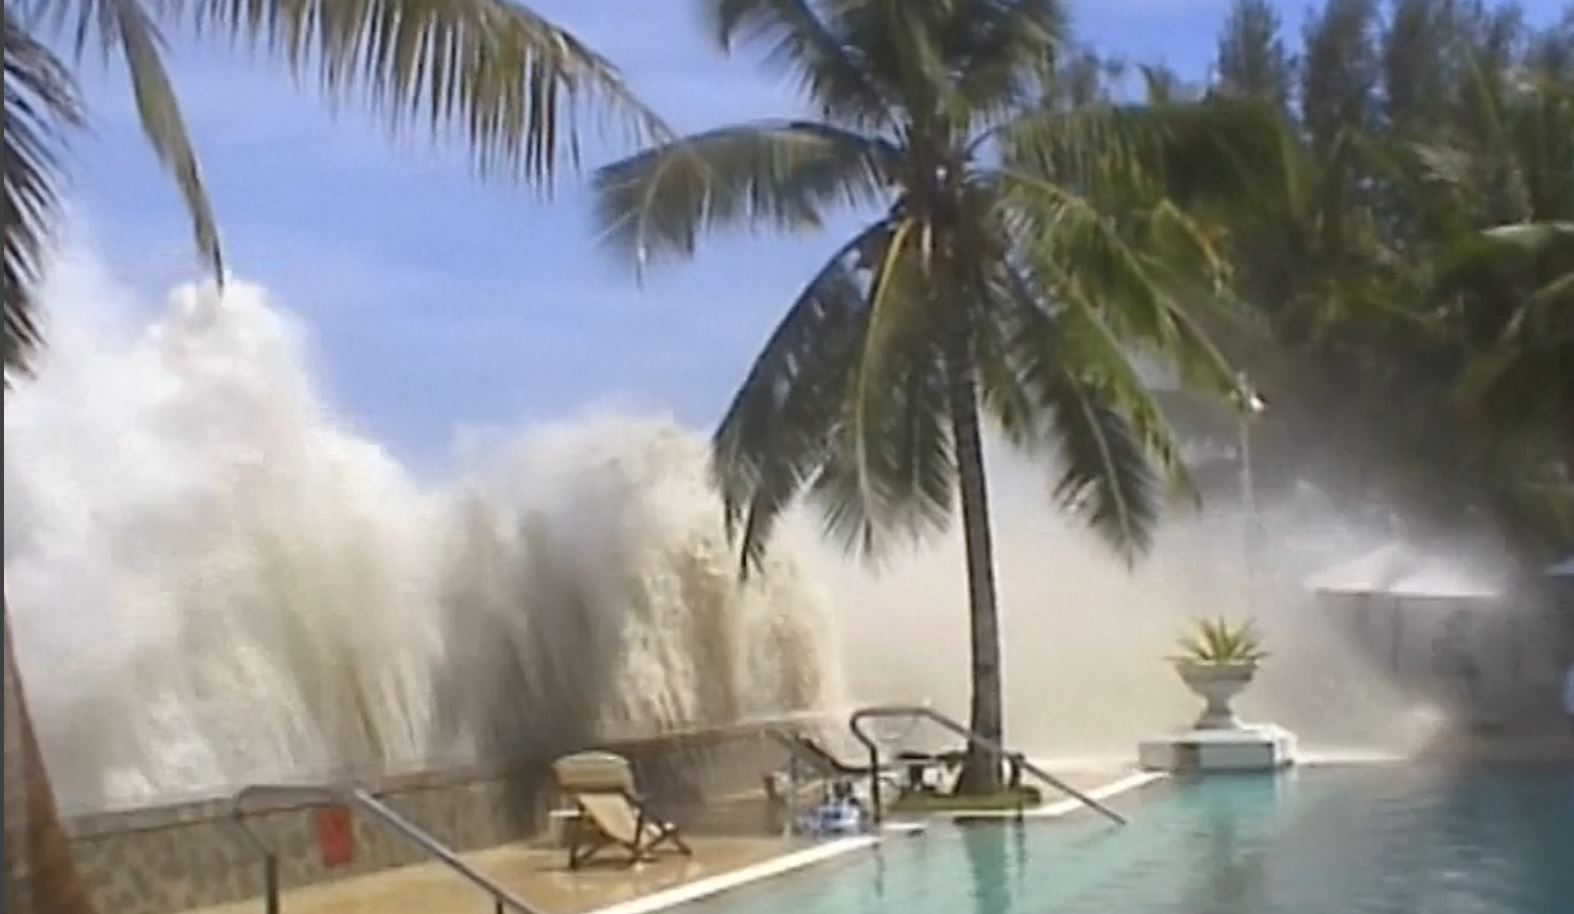 Boxing Day Tsunami Facts About The 2004 Disaster